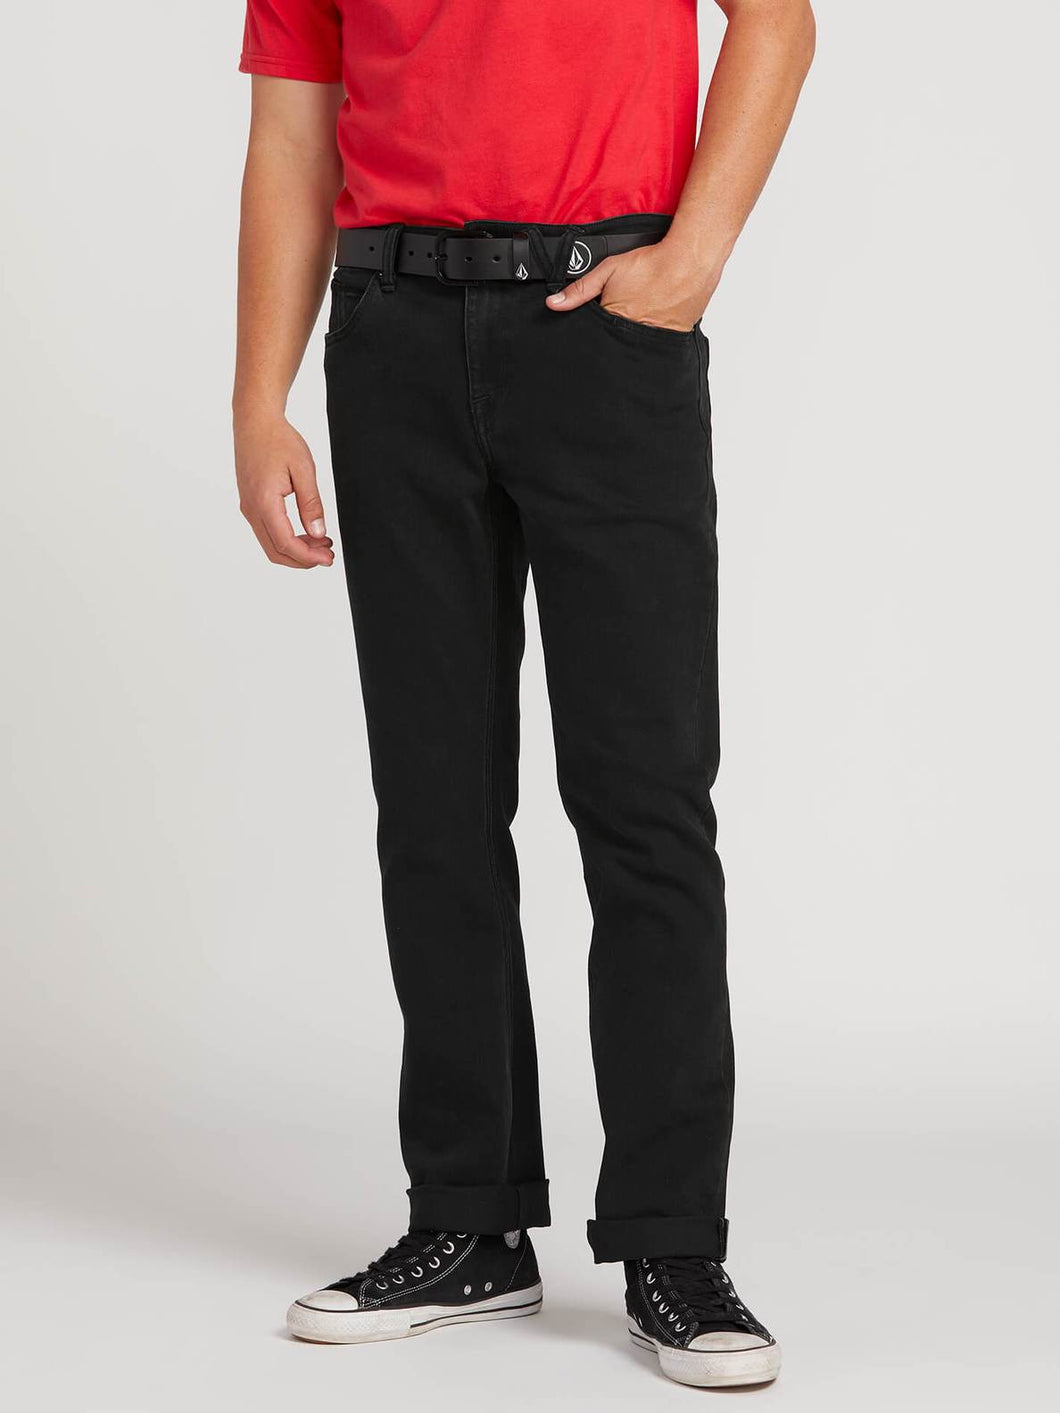 Volcom Solver Modern Straight Denim Jean in Blackout